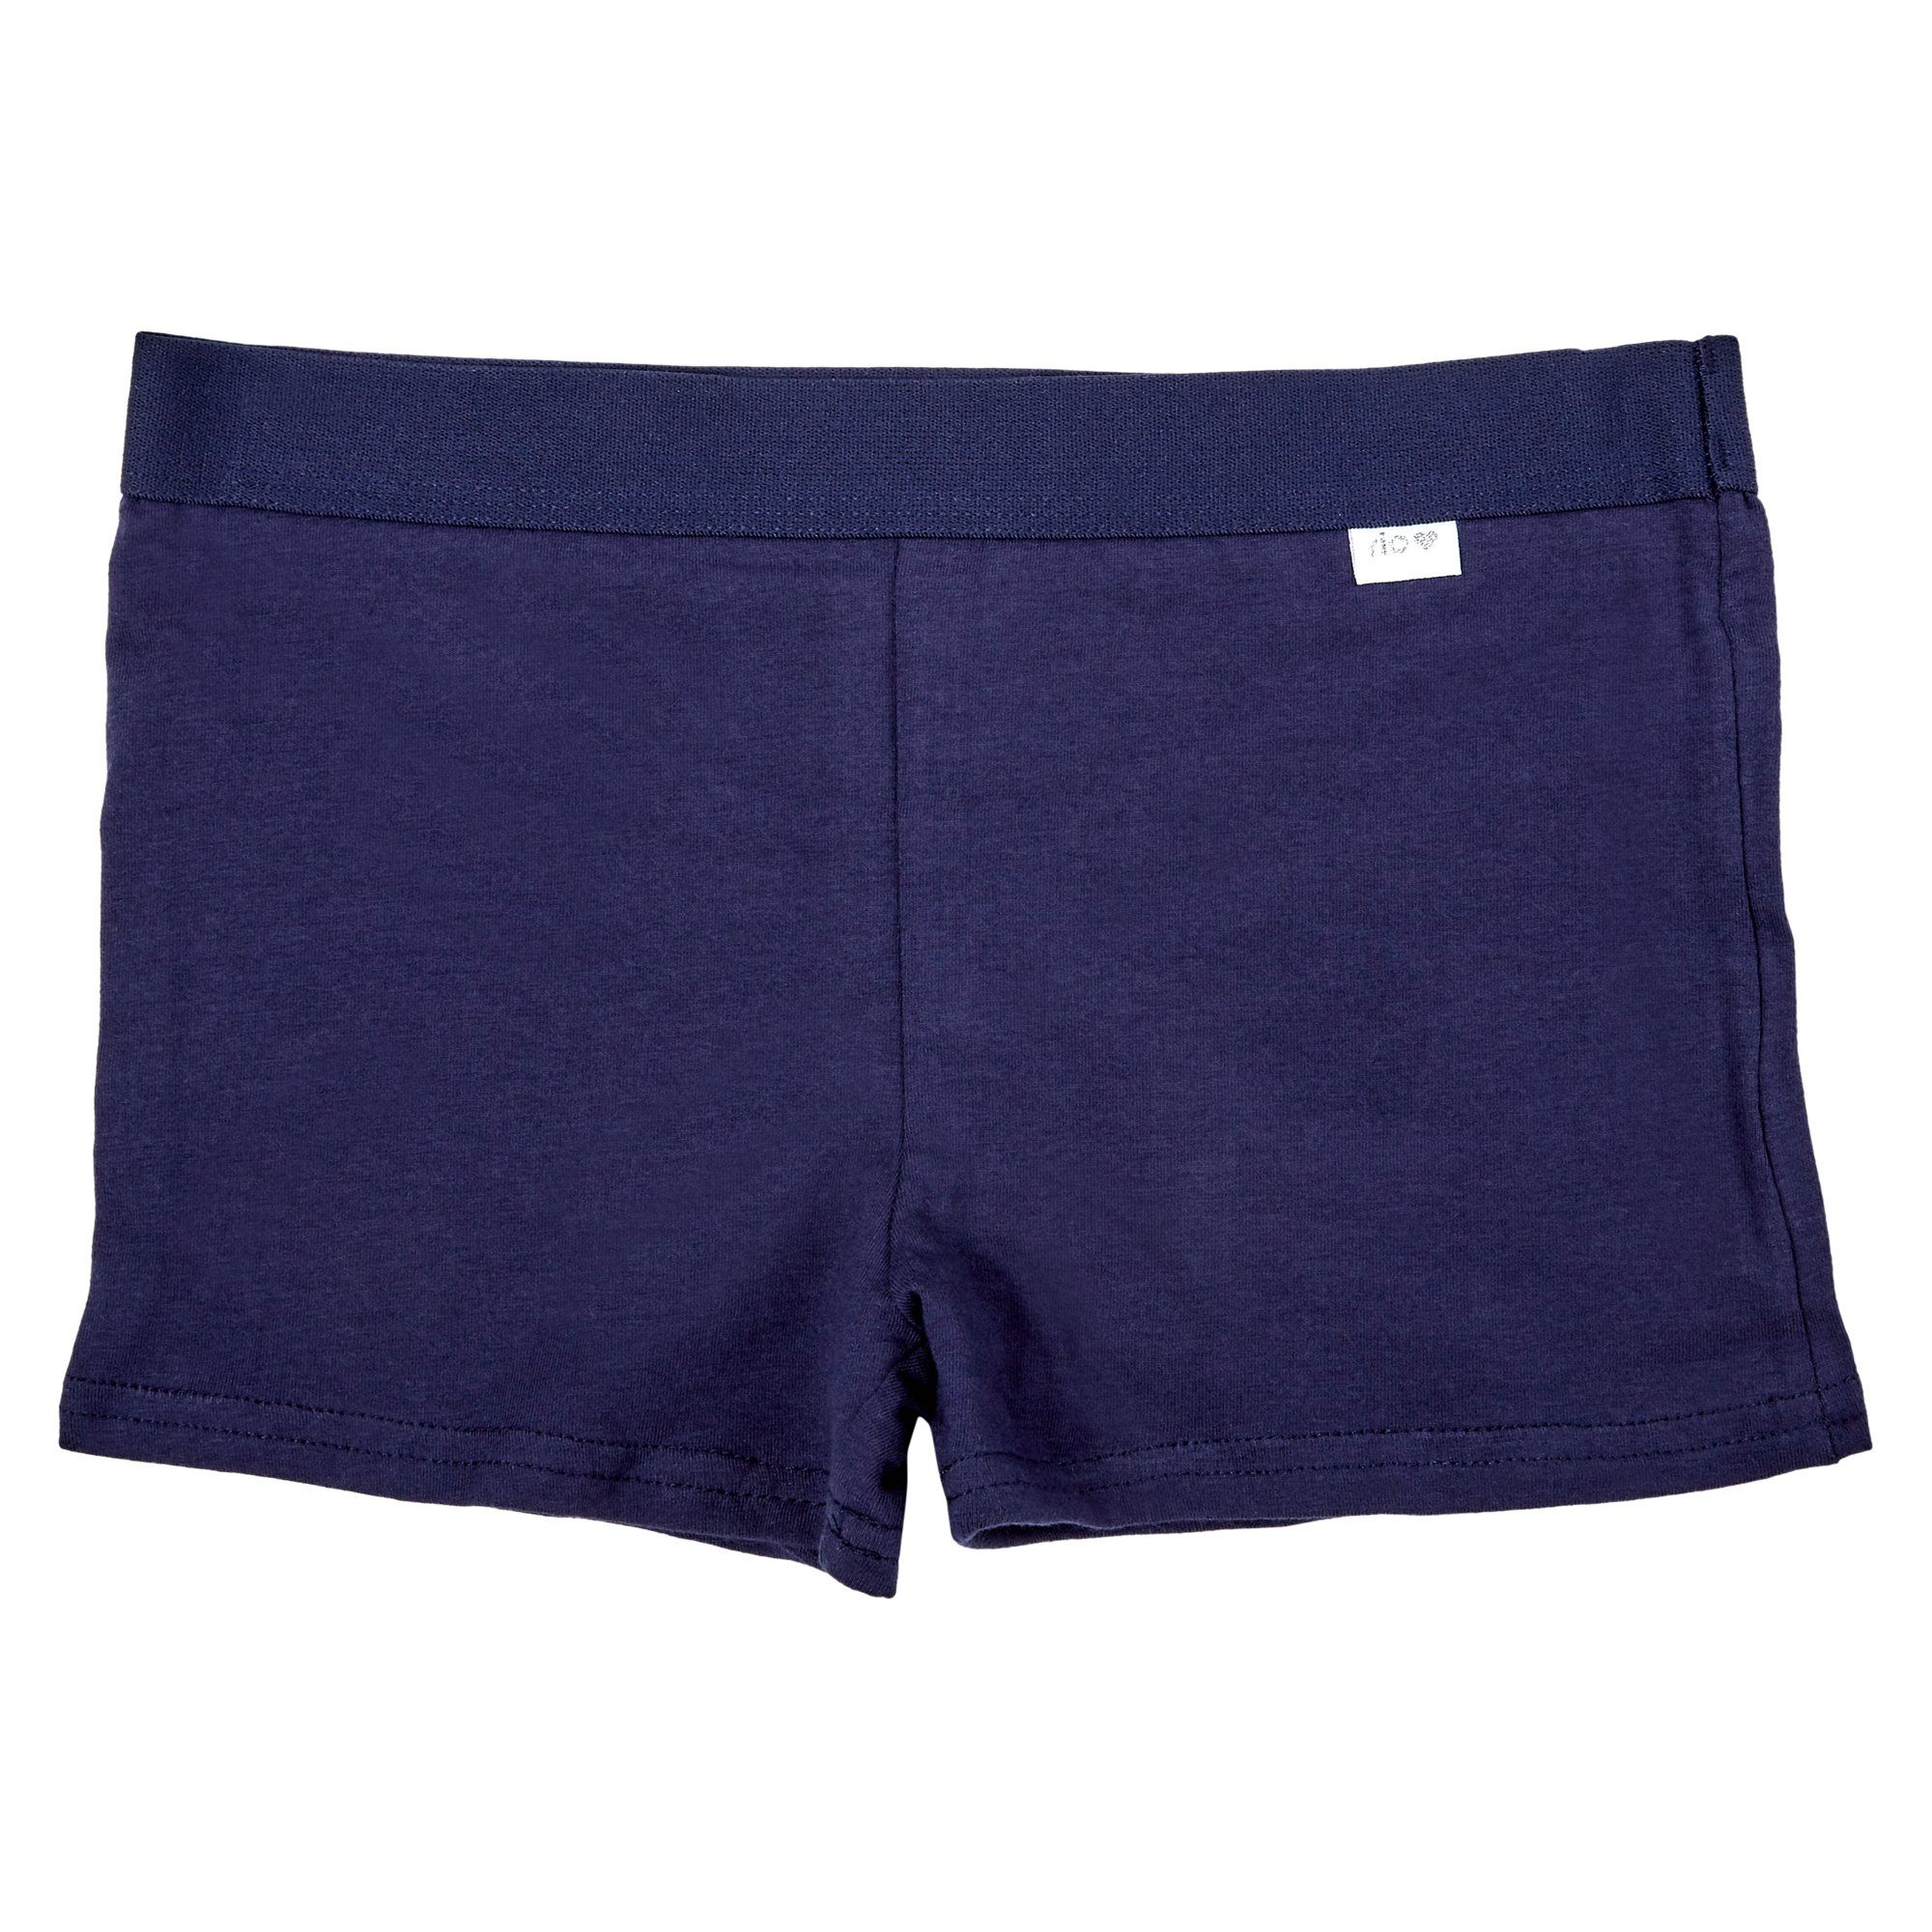 Rio Girl's 2 Pack Netball Knickers Shortie - Navy Apparel Rio  (2019304833083)